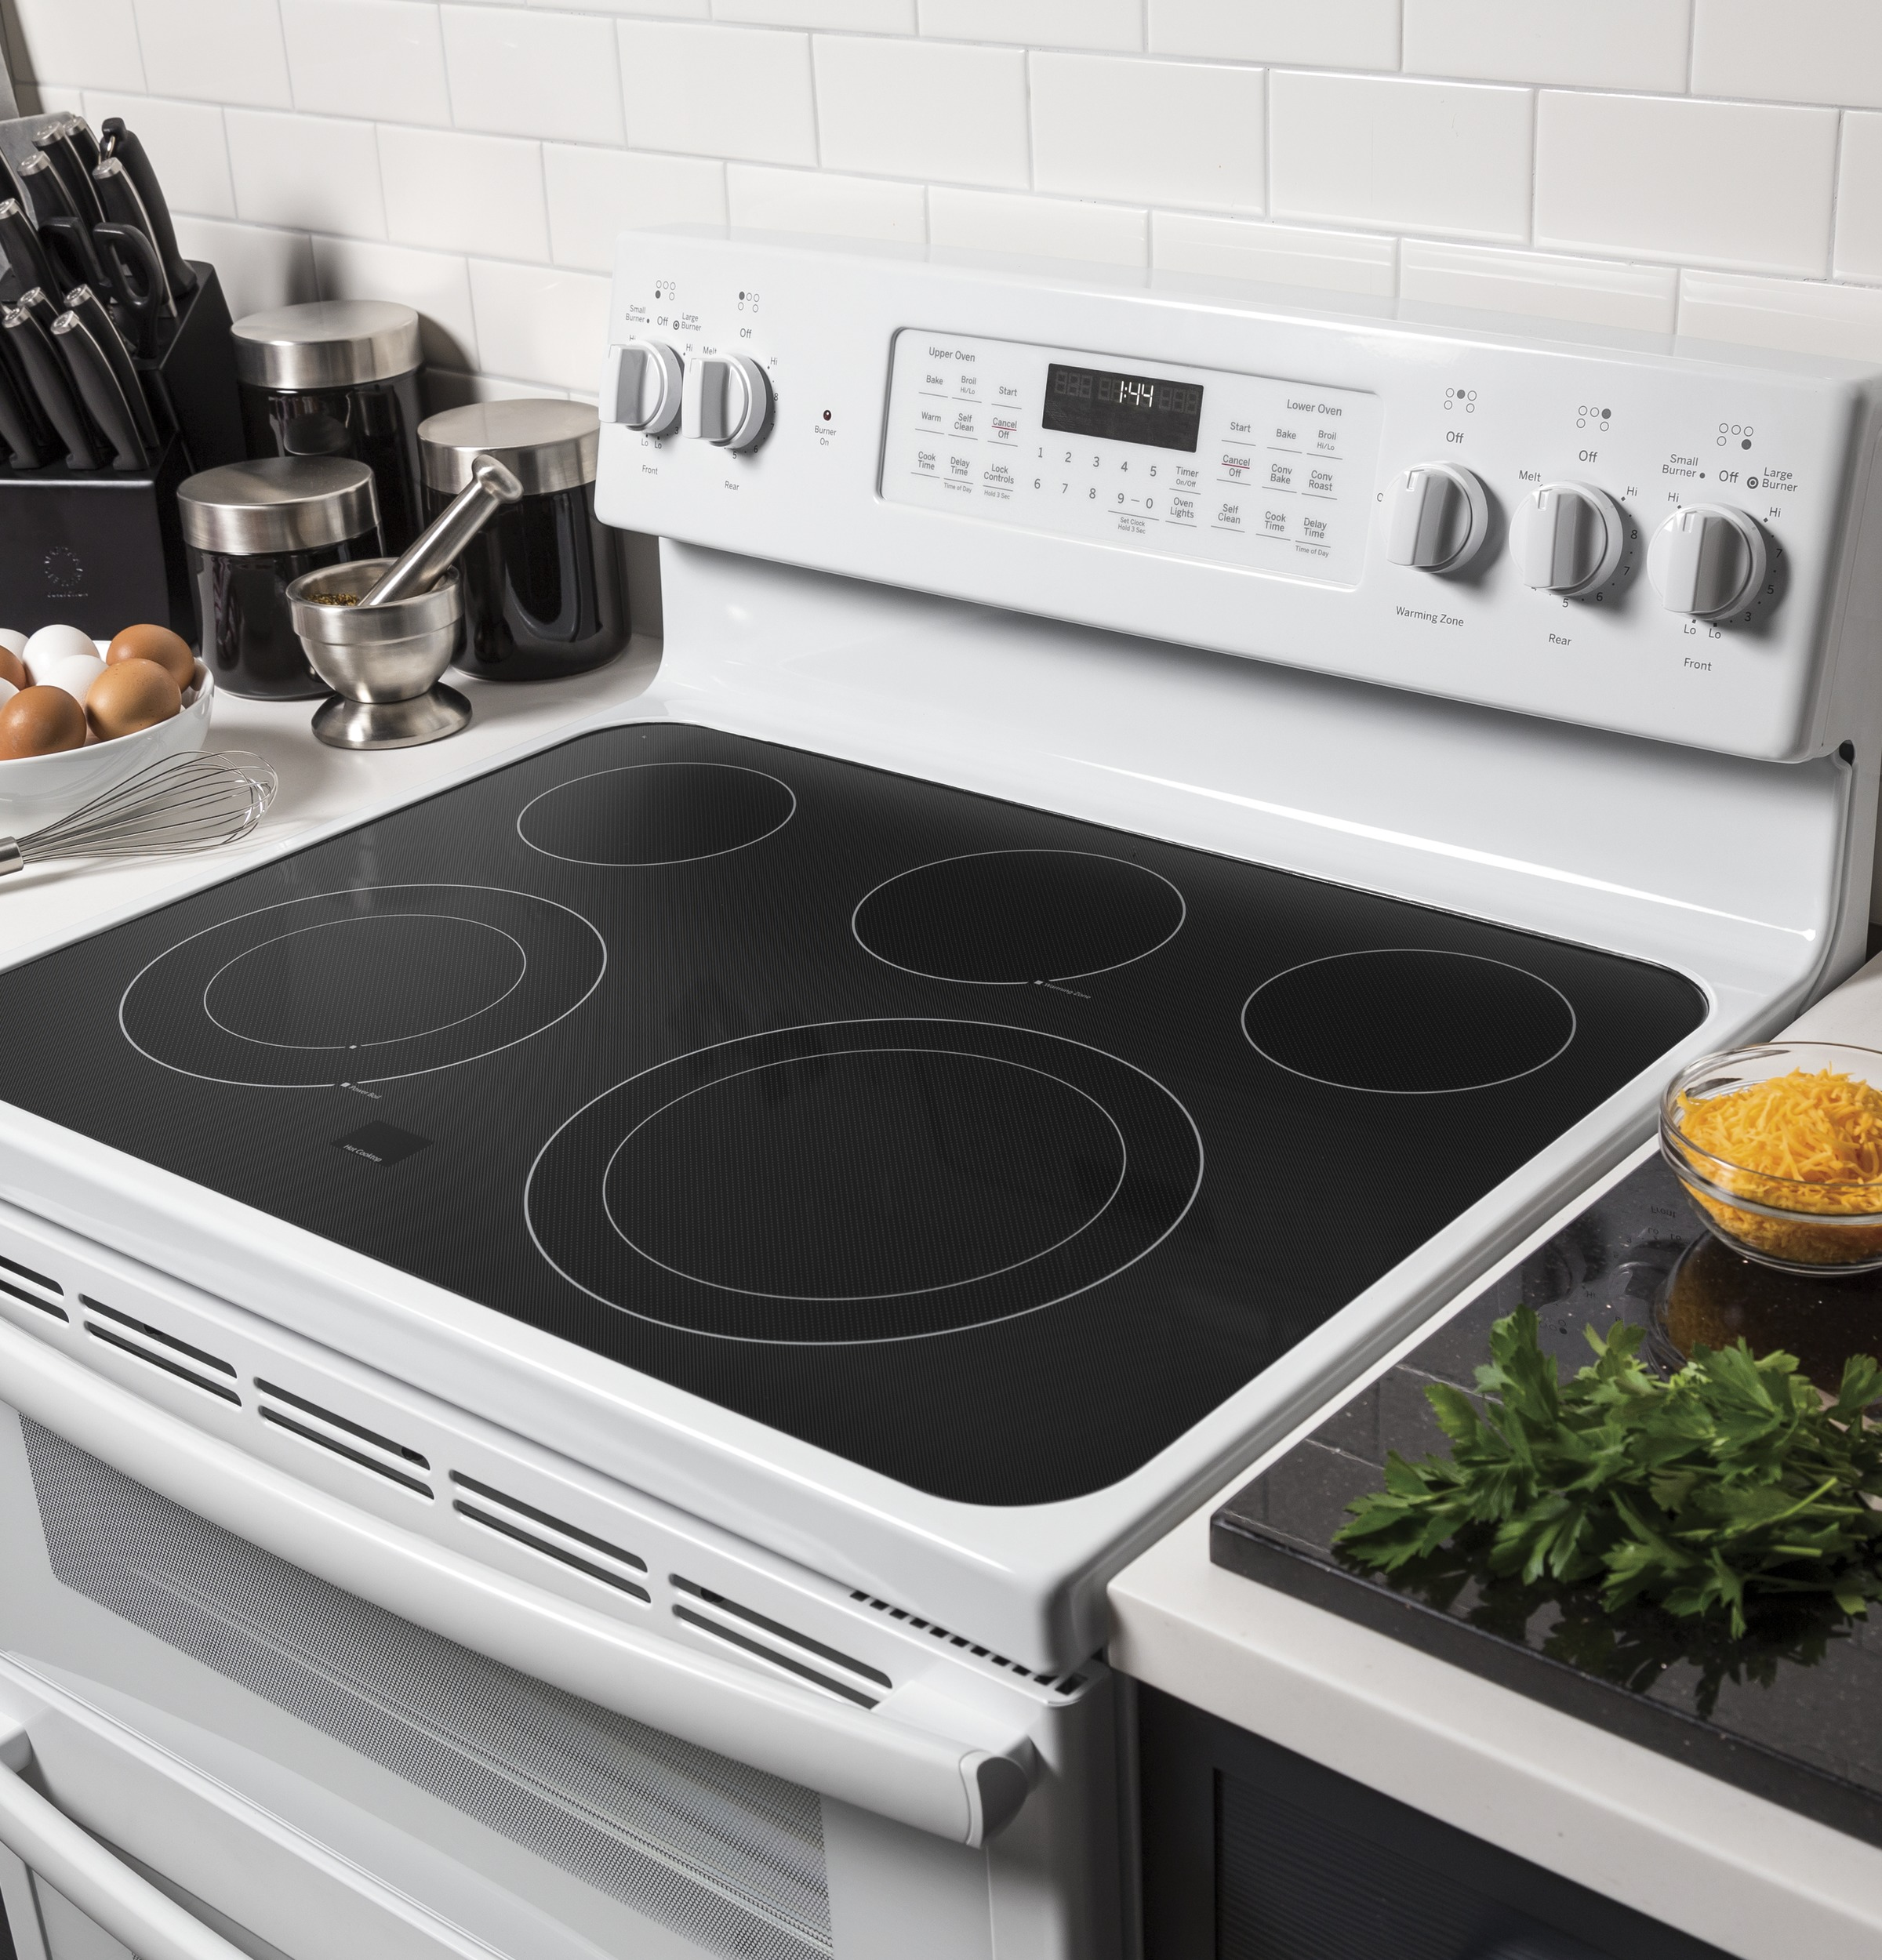 """Model: JB860DJWW 